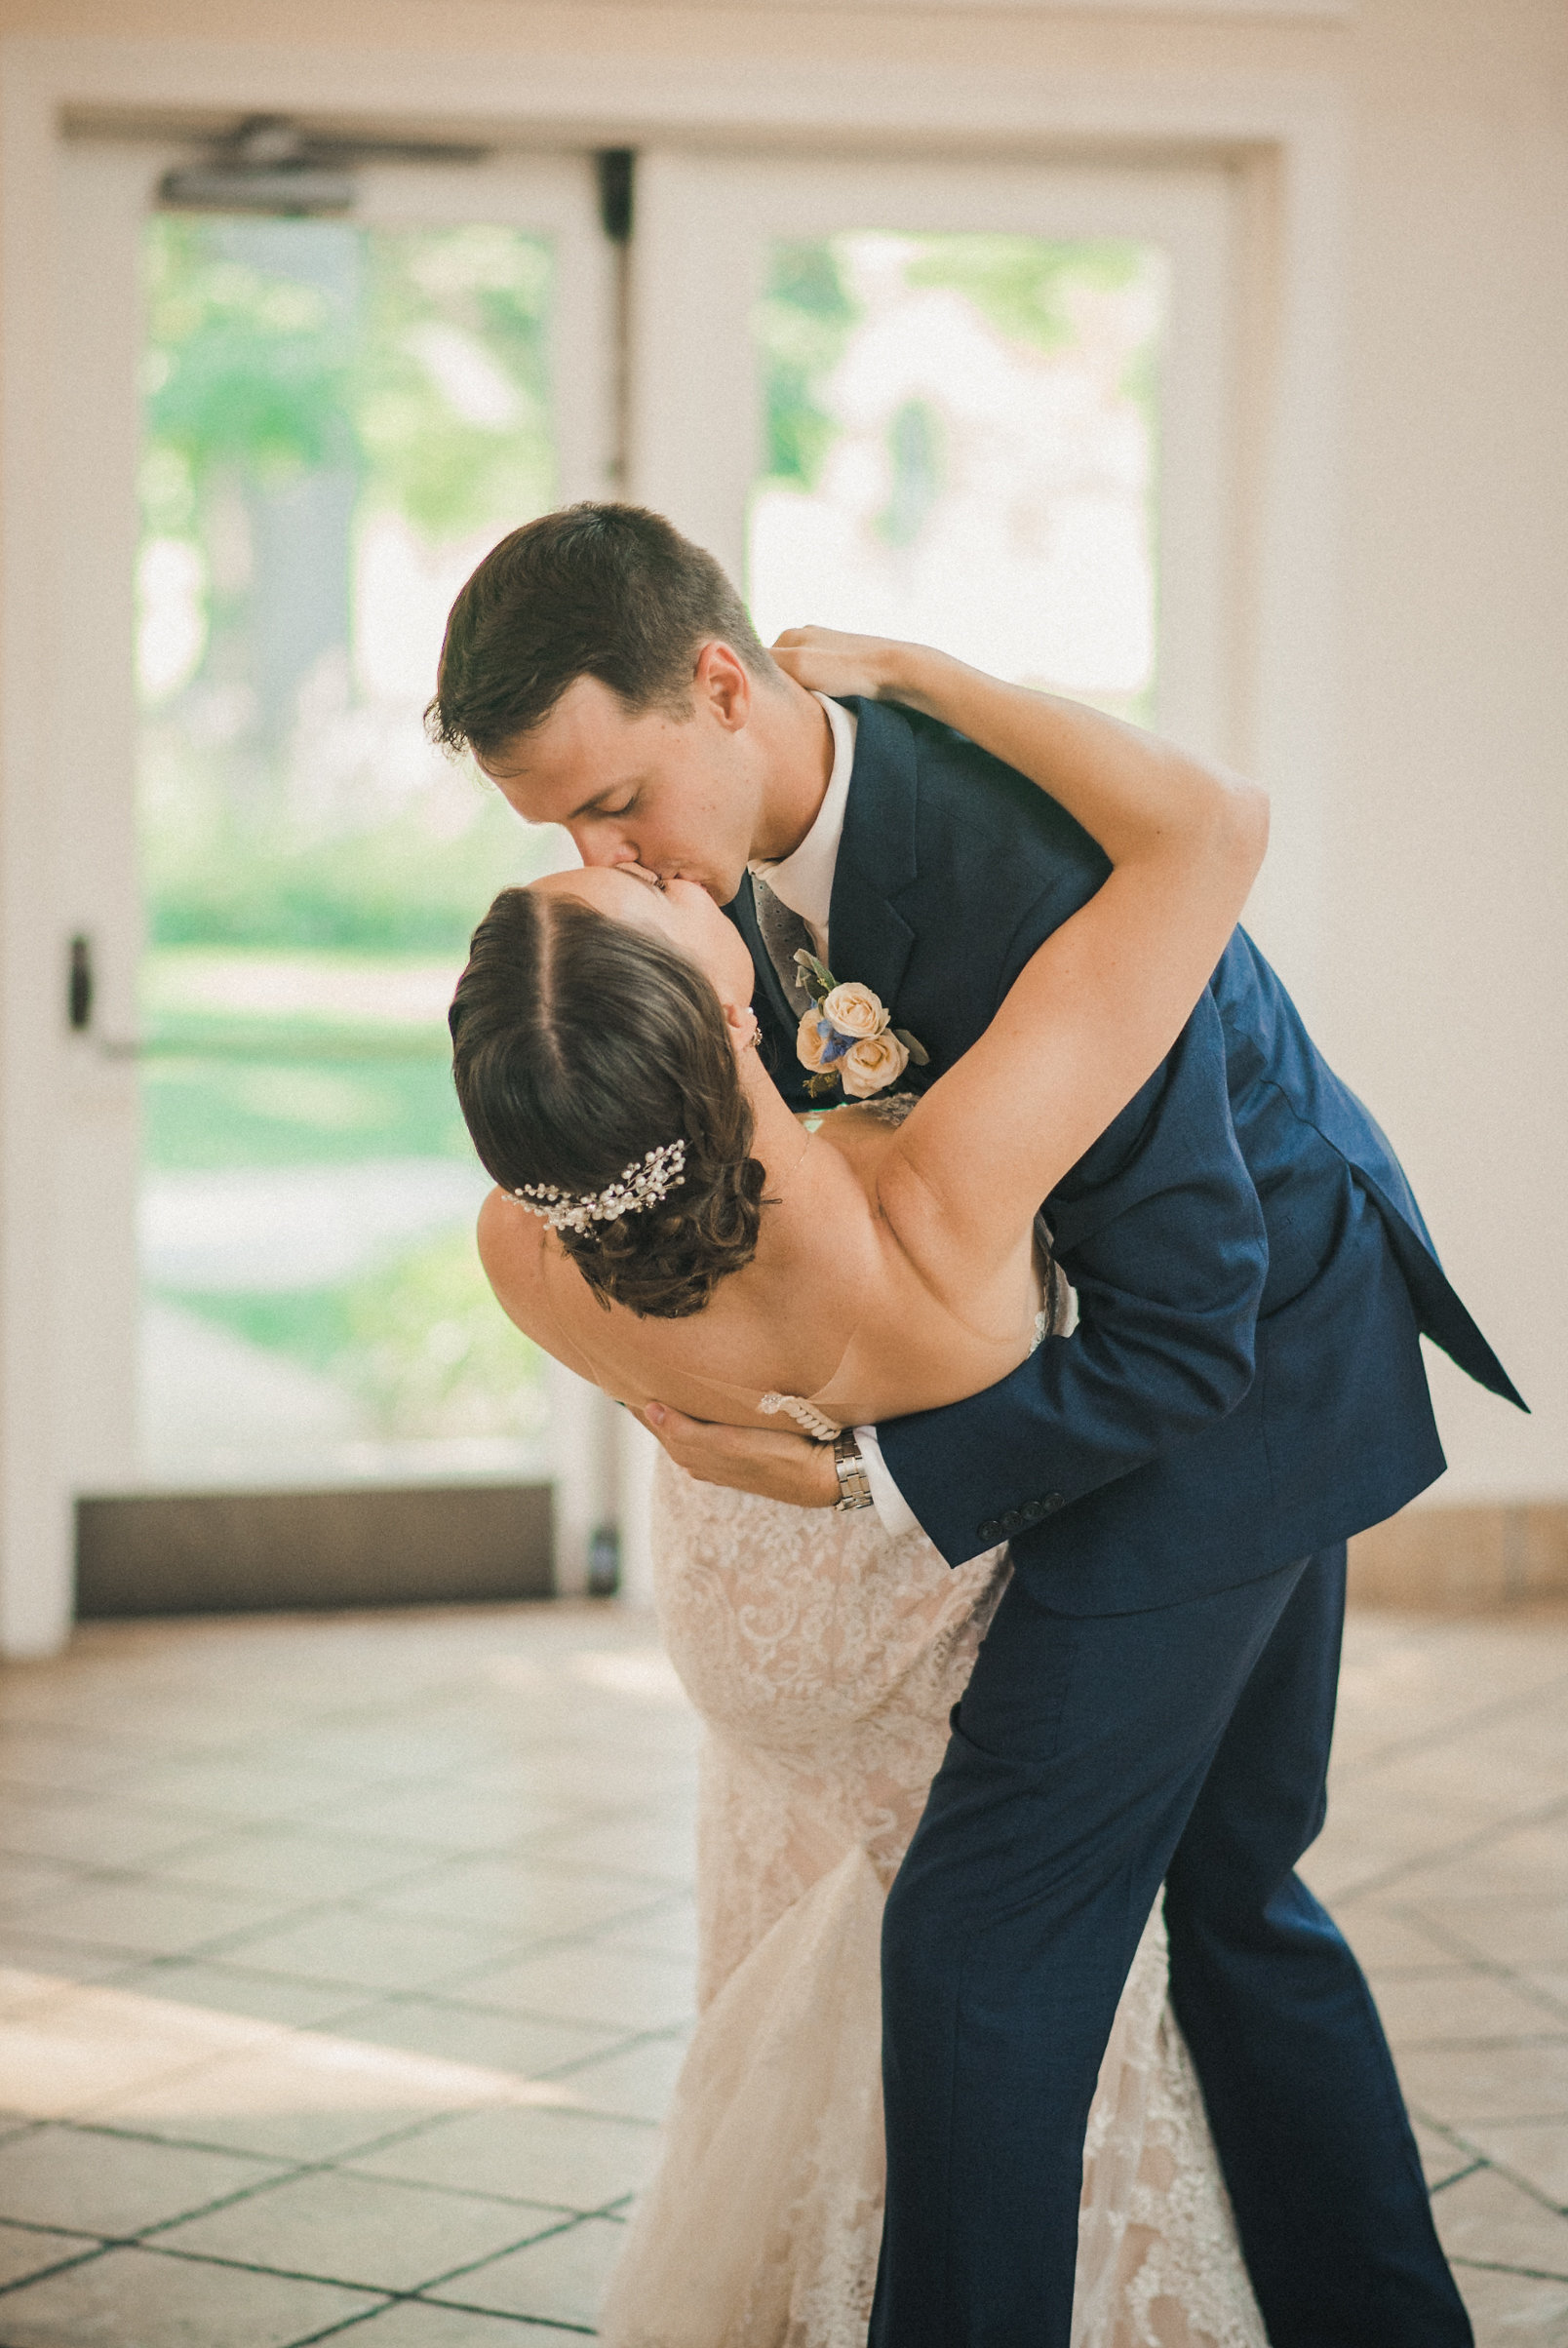 Groom dipping bride during dance